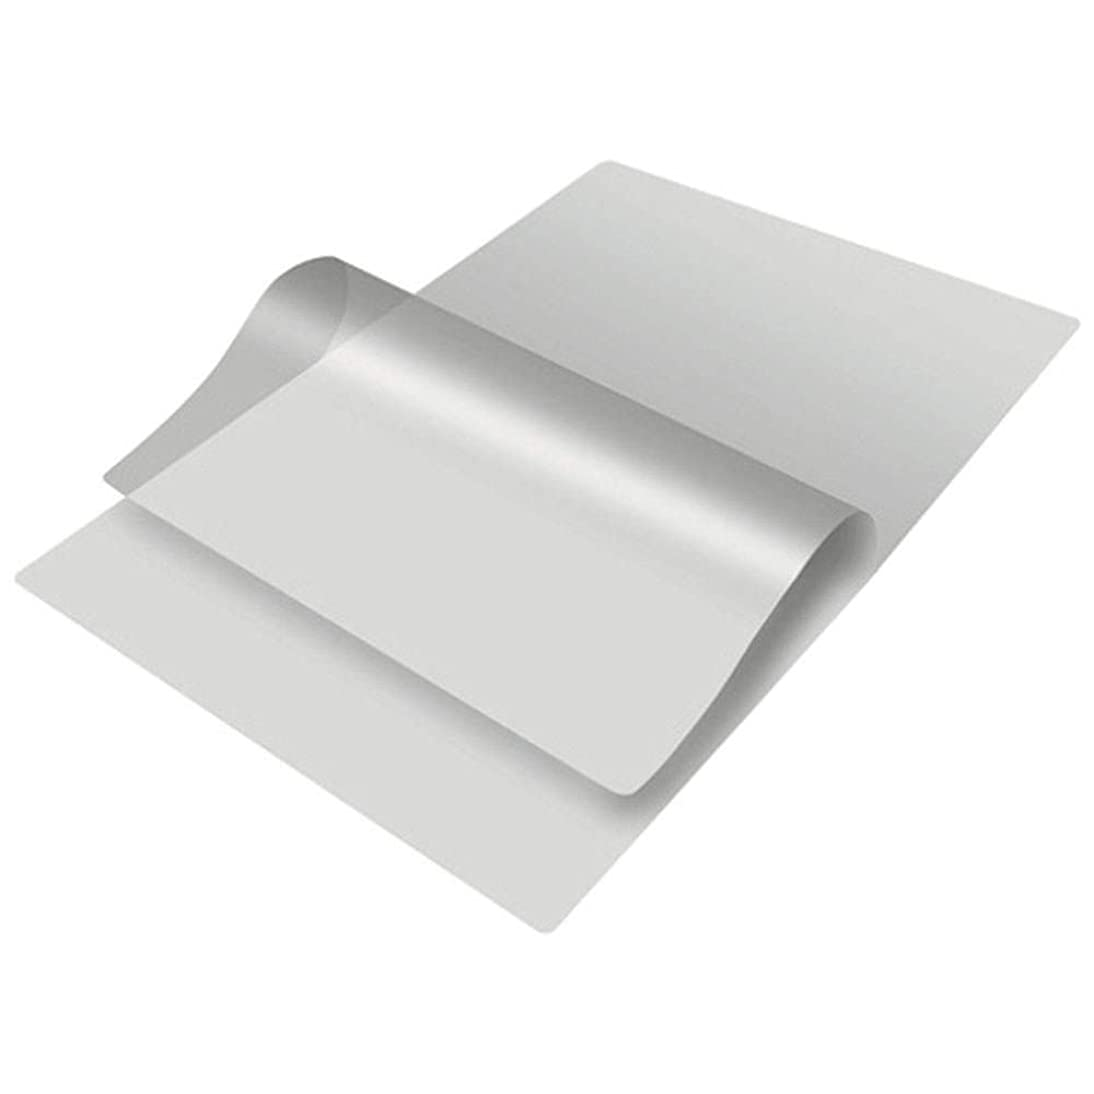 TYH Supplies 200-Pack Thermal Laminating Pouches Hot Glossy Clear Pockets 8.5